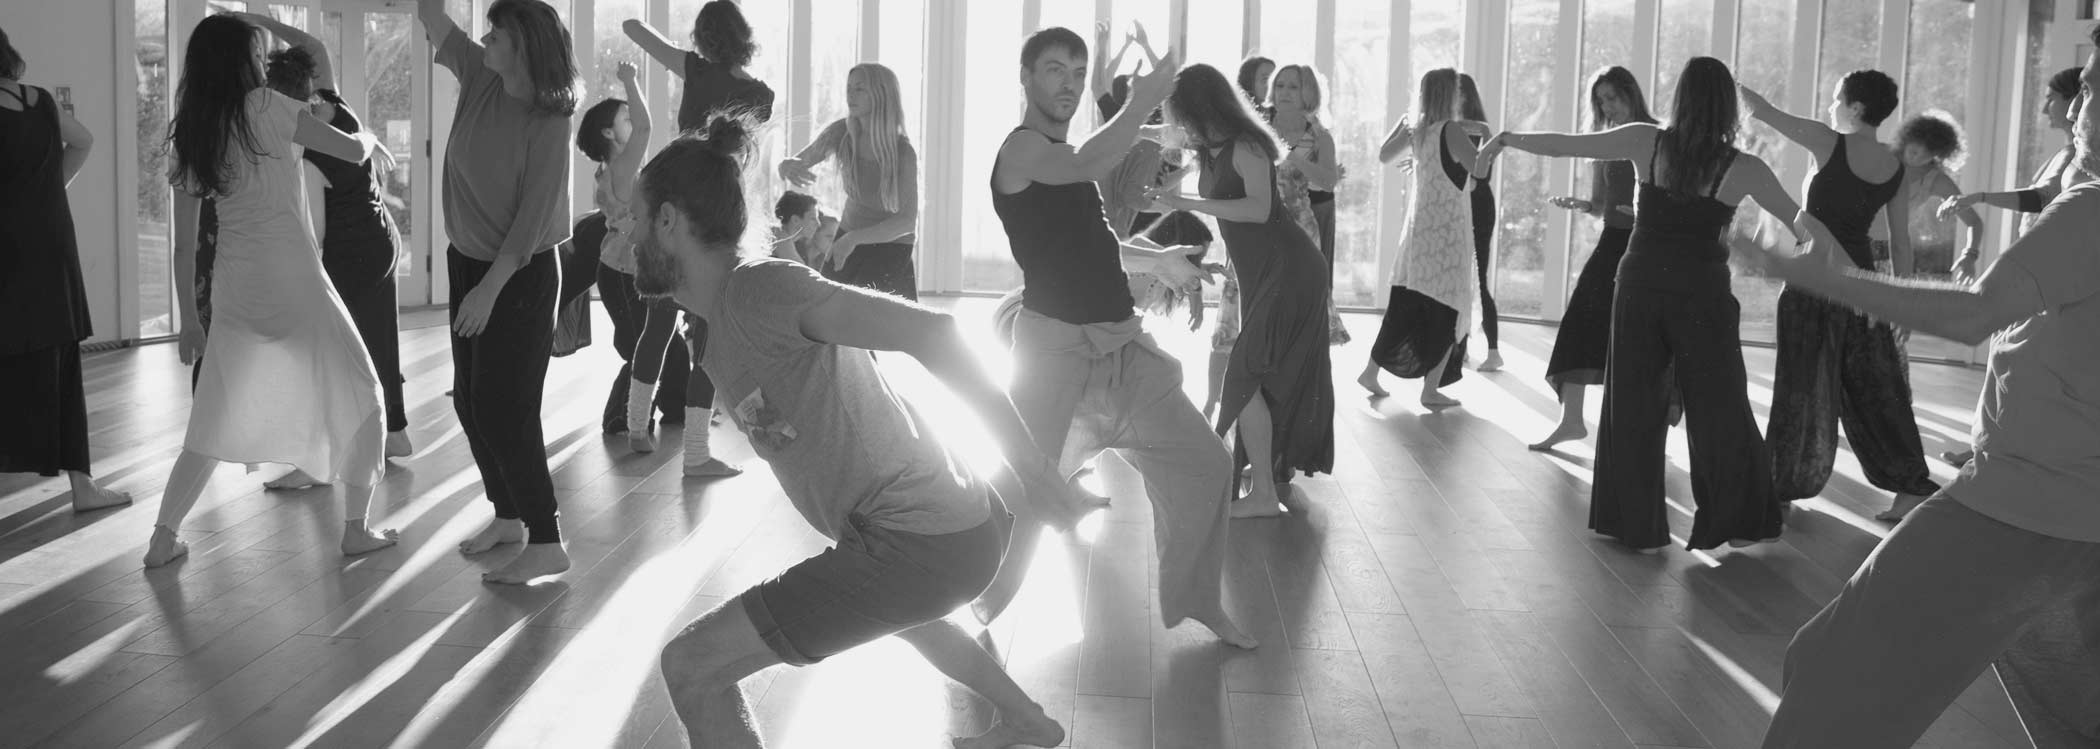 group of people dancing a conscious dance workshop